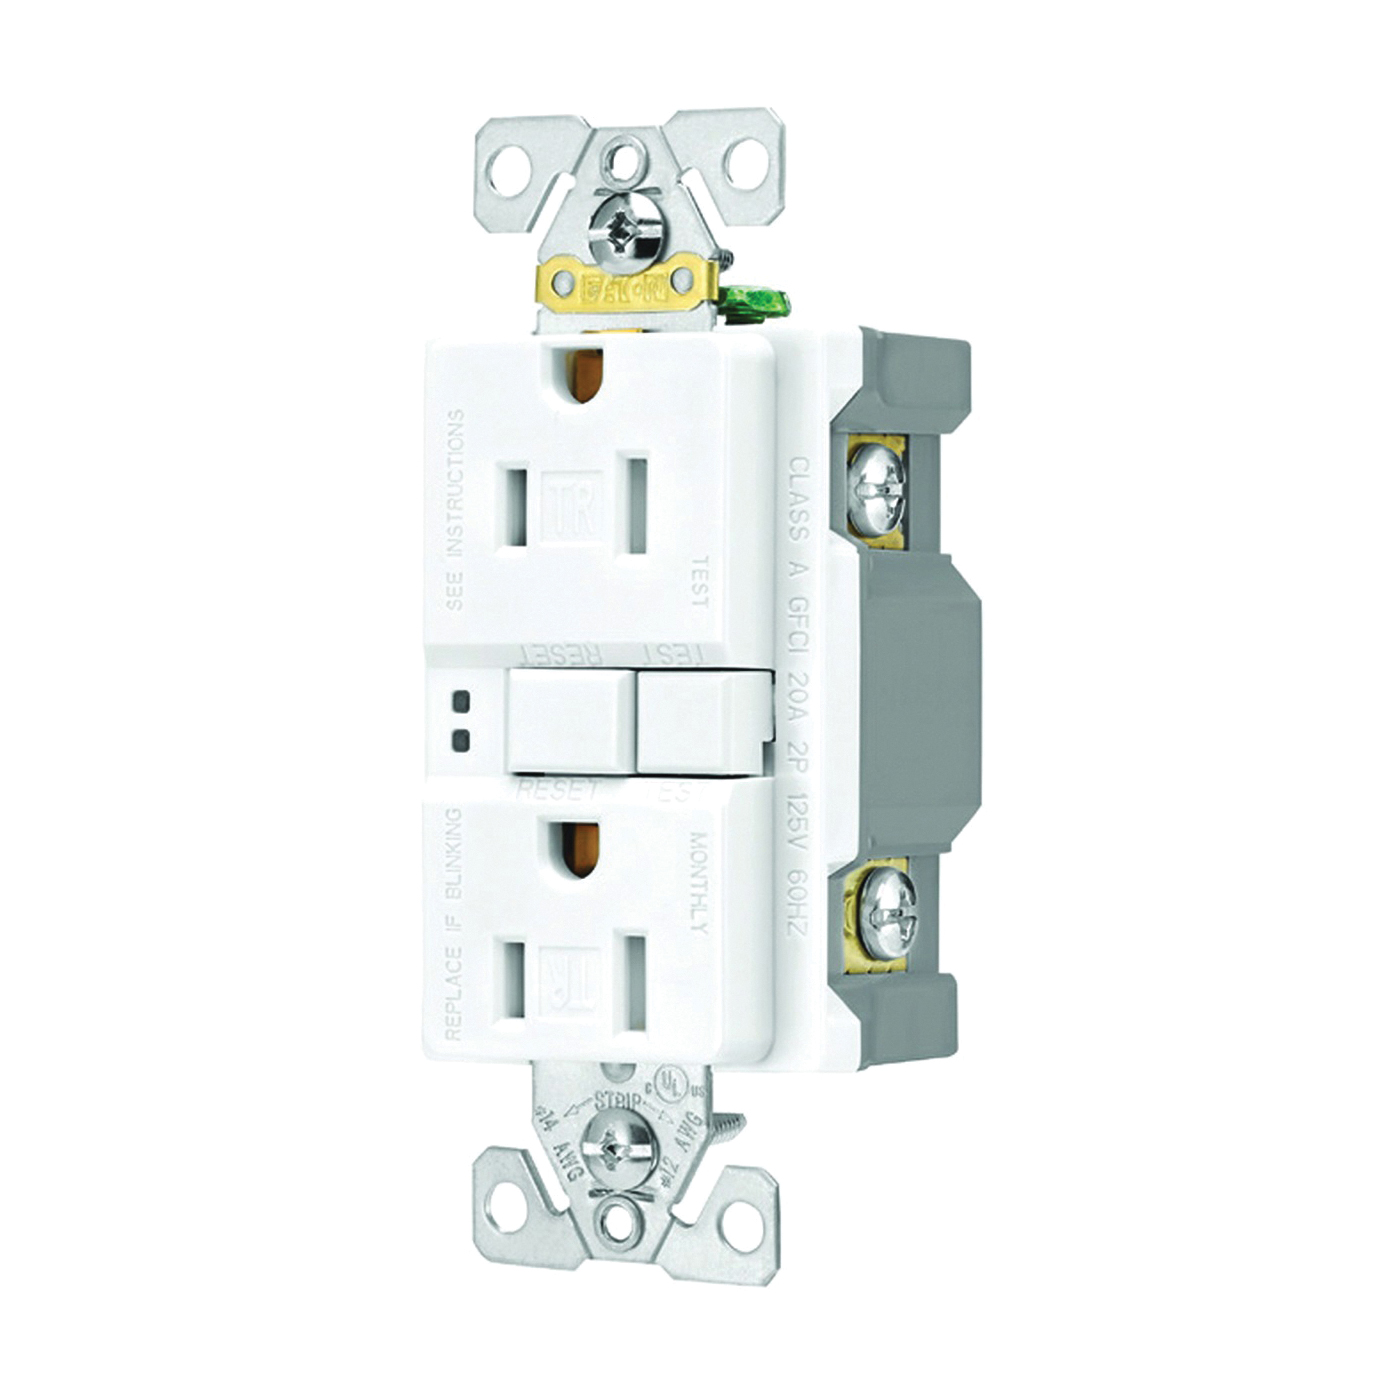 Picture of Eaton Wiring Devices SGF15W-3 Duplex GFCI Receptacle, 2-Pole, 15 A, 125 V, Back, Side Wiring, NEMA: 5-15R, White